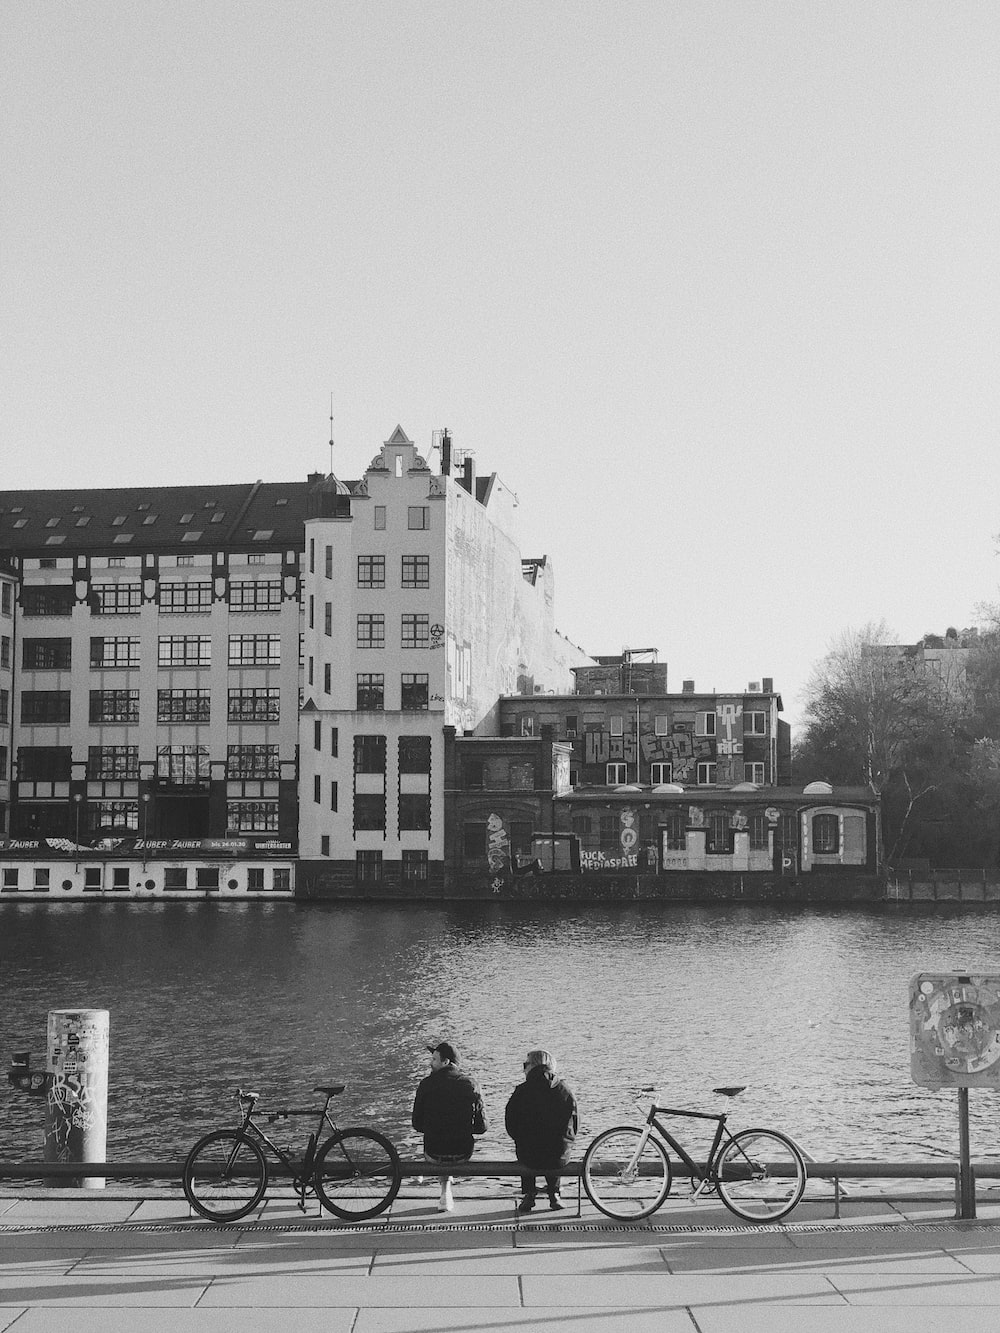 grayscale photo of people walking on sidewalk near body of water and buildings